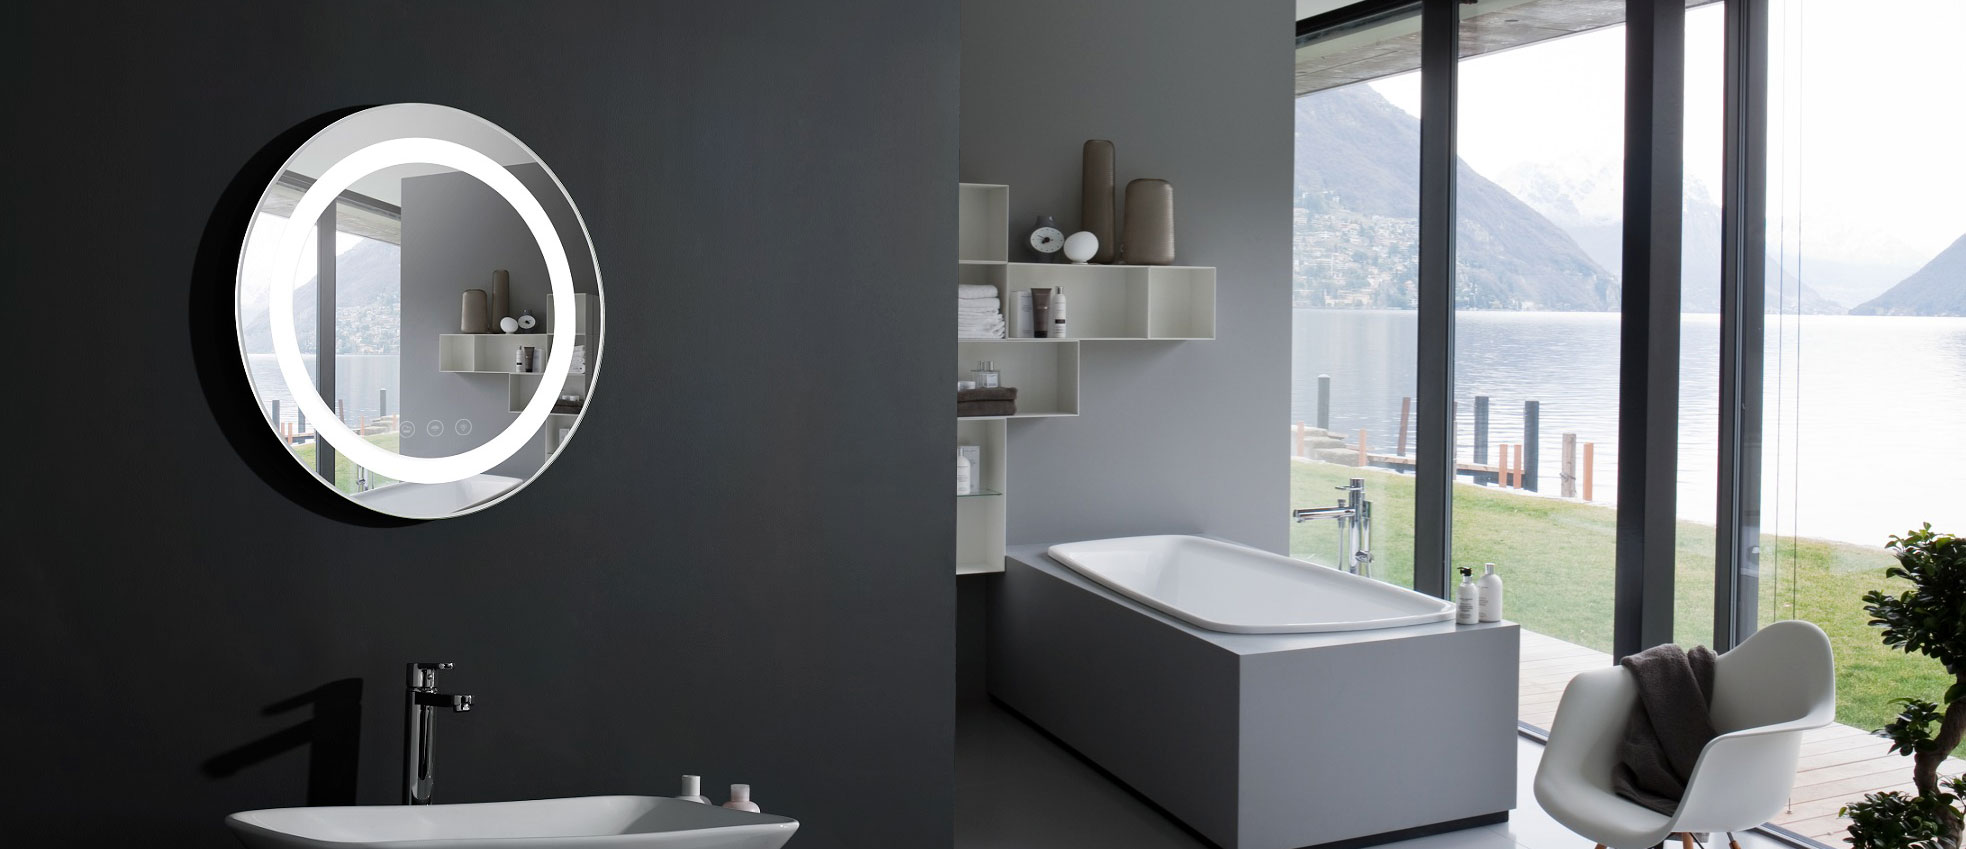 contemporist ideas large wall whole mirror the bathroom fill